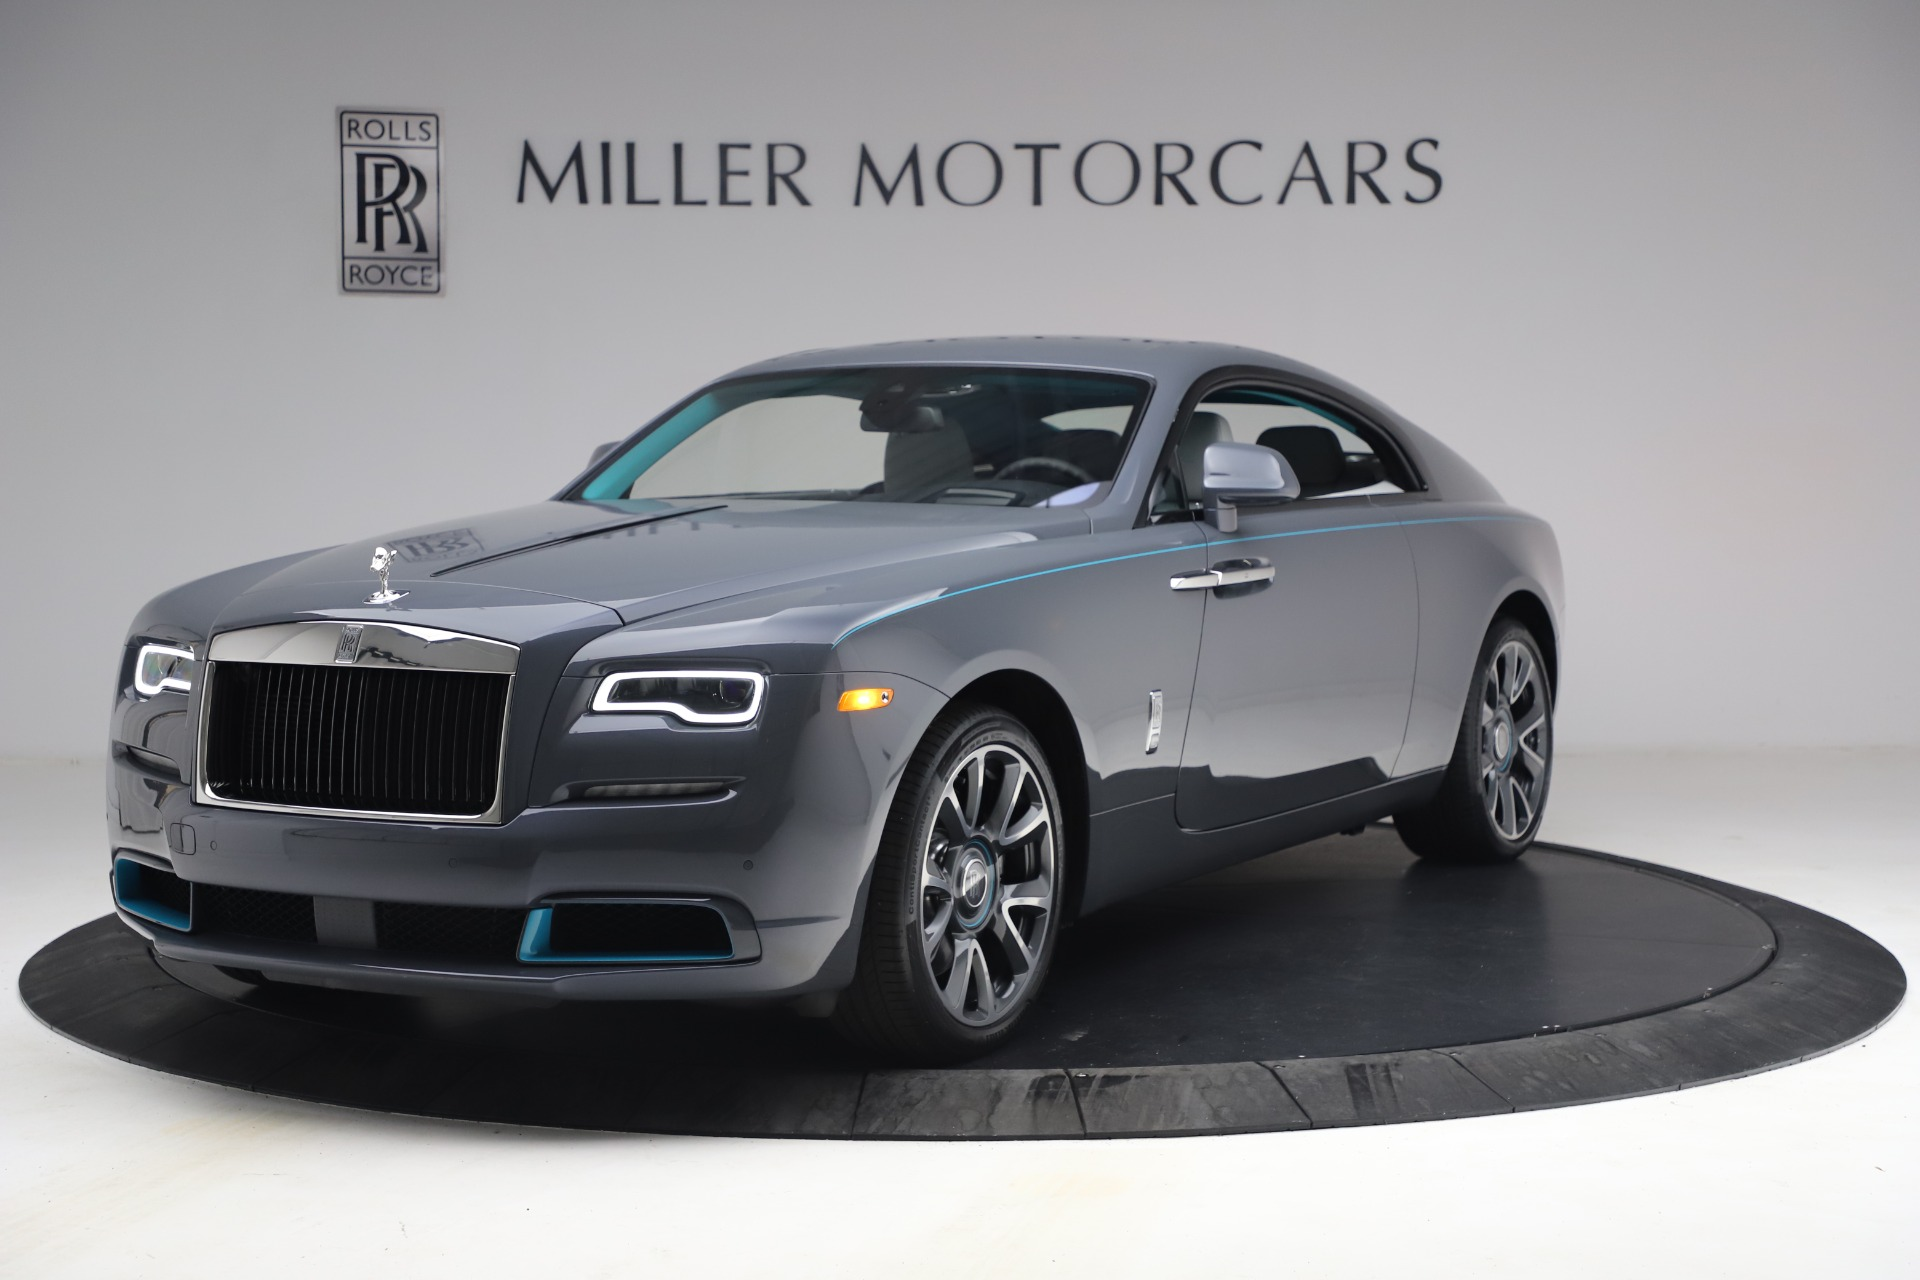 Used 2021 Rolls-Royce Wraith for sale $444,275 at McLaren Greenwich in Greenwich CT 06830 1